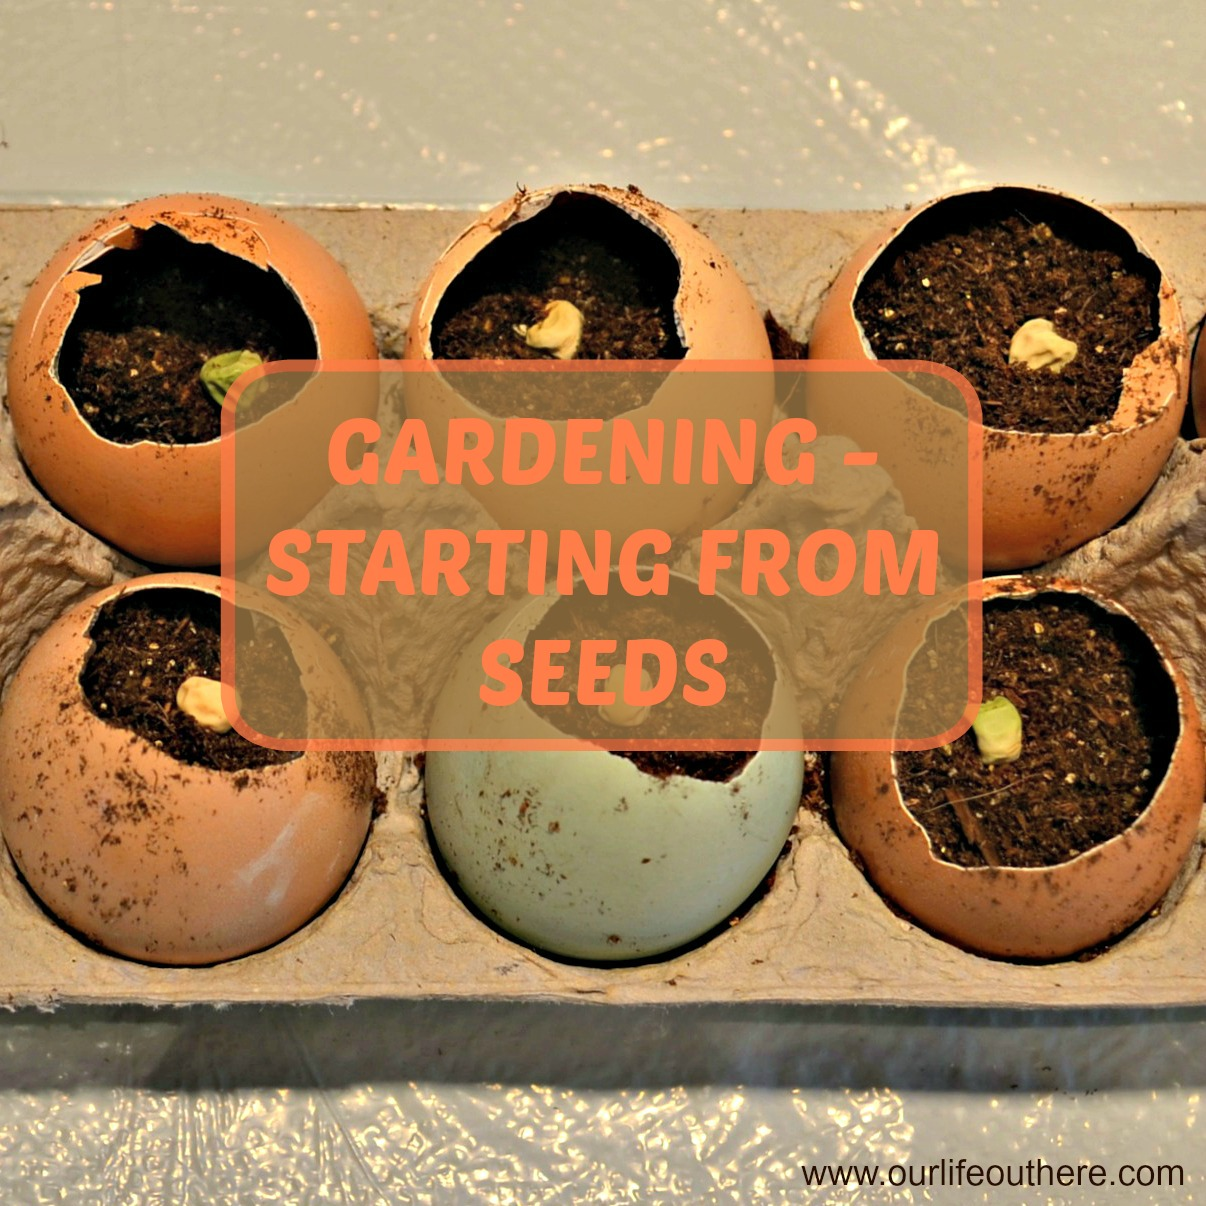 Enchanting What Gardening Zone Am I In By Zip Code Pictures - Brown ...